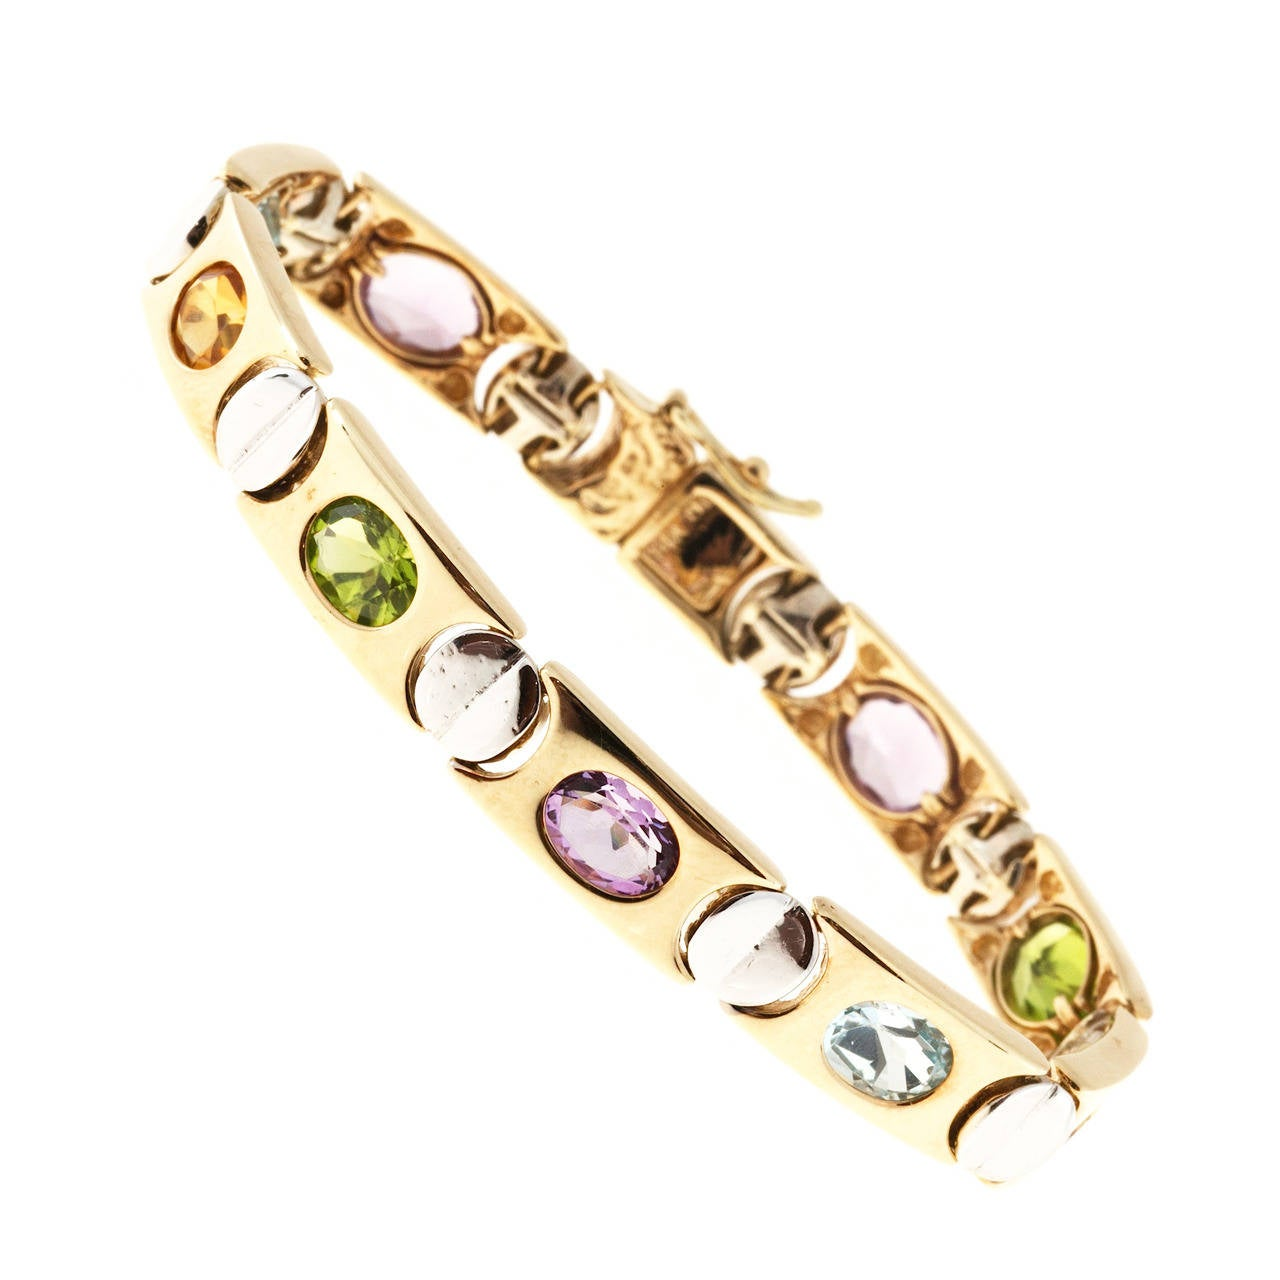 Topaz Amethyst Citrine Peridot Two Color Gold Bracelet